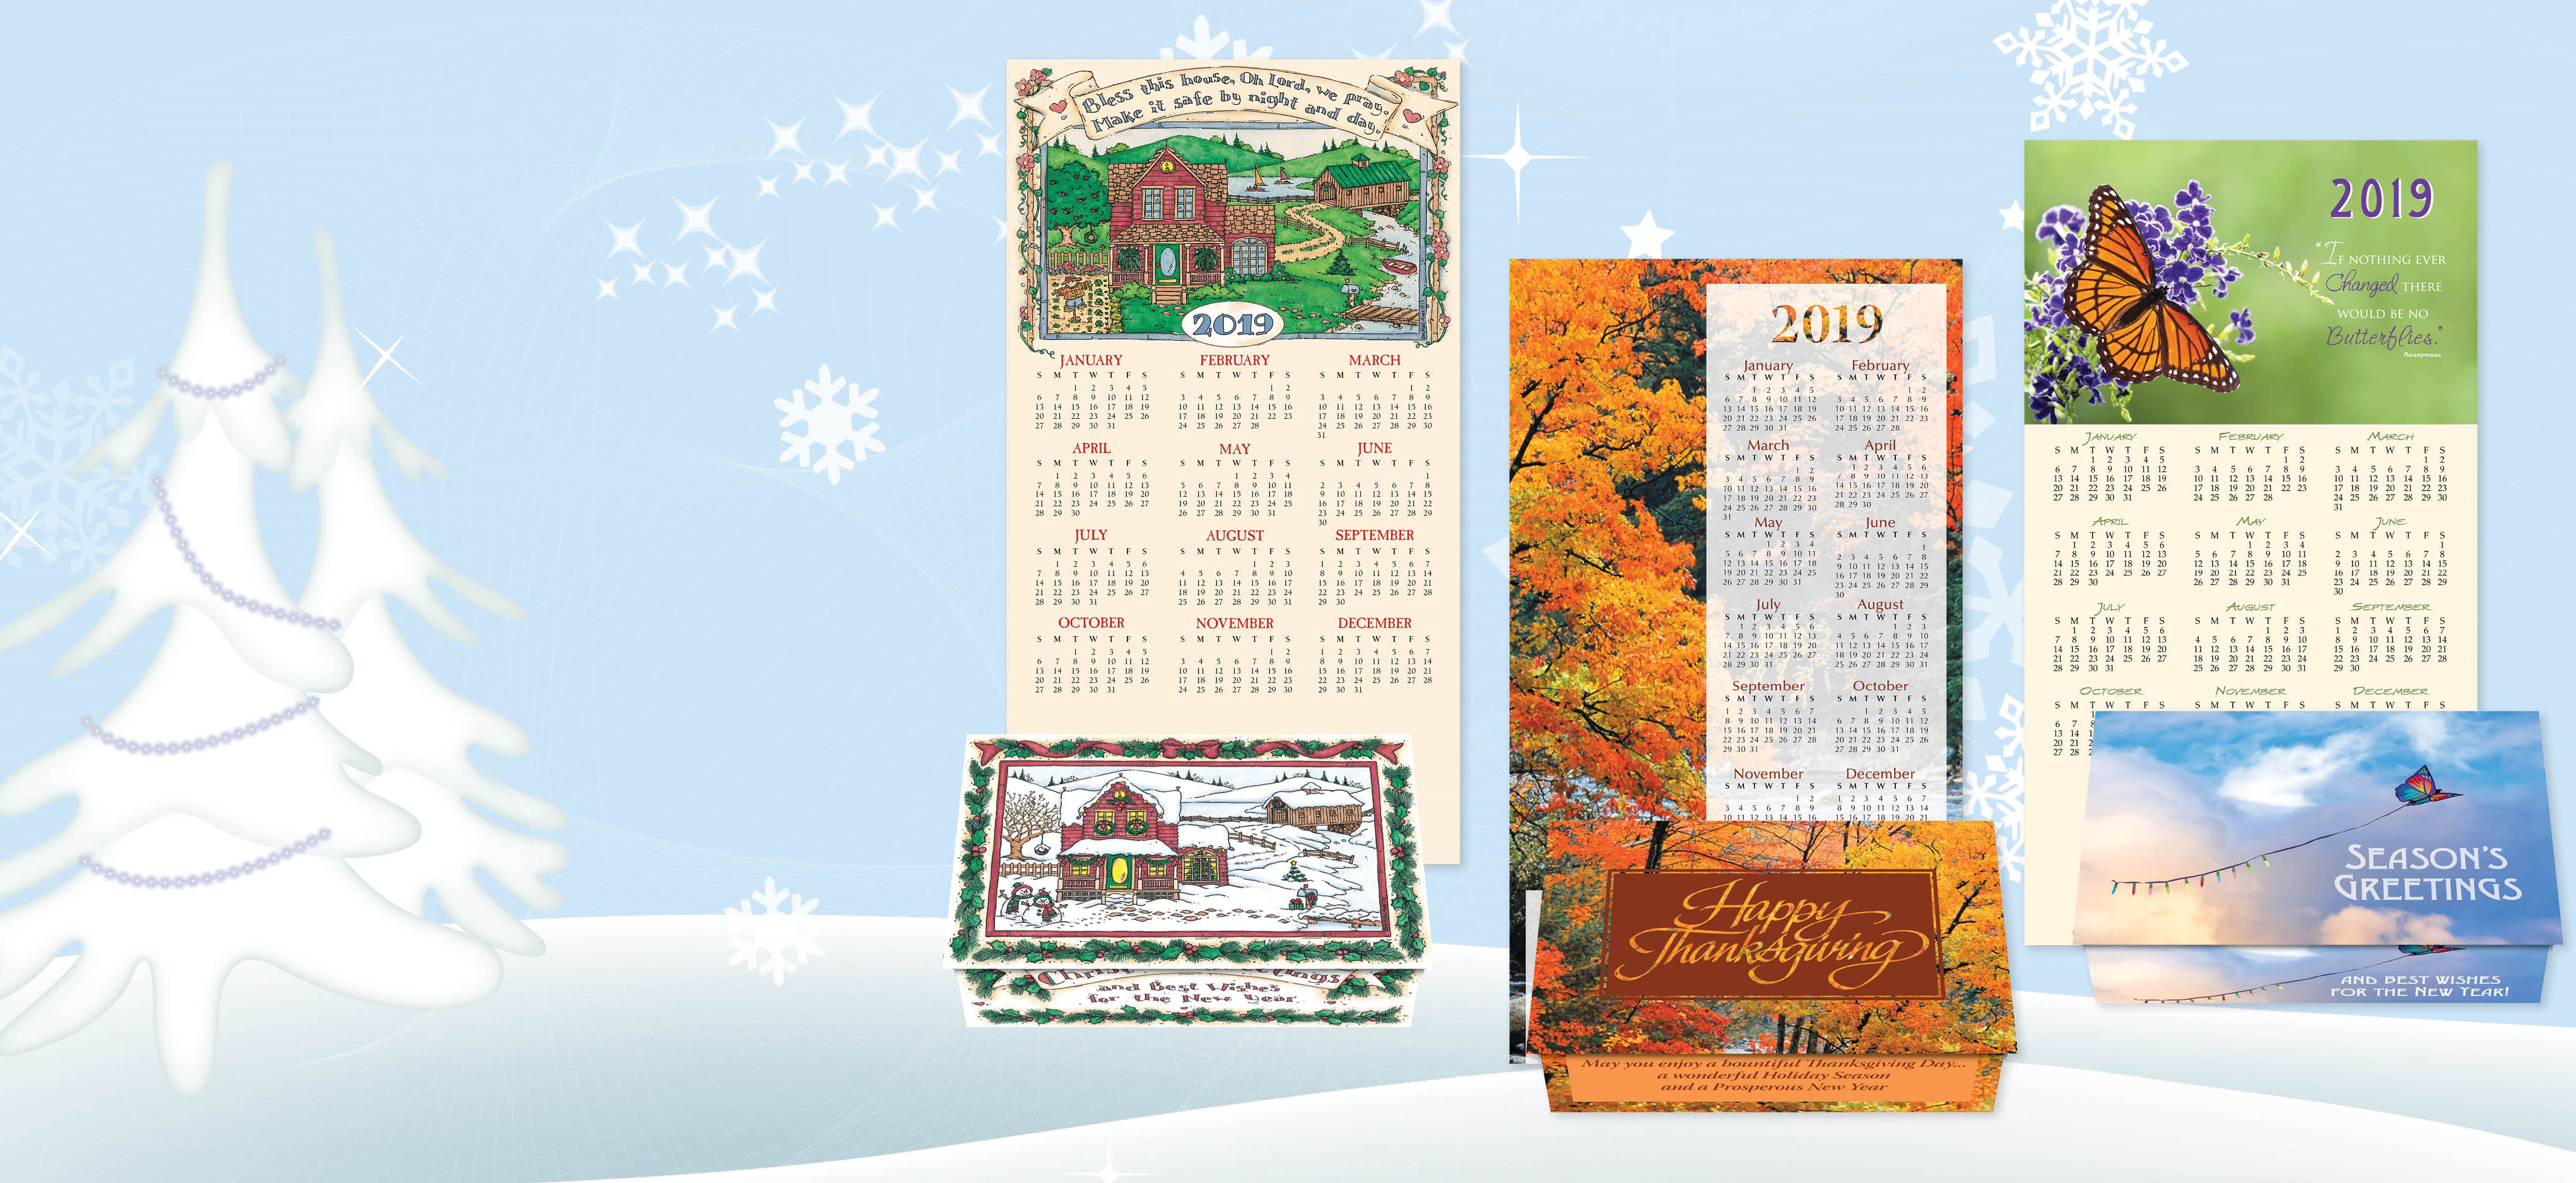 Choose from more than 100 Calendar Card Designs